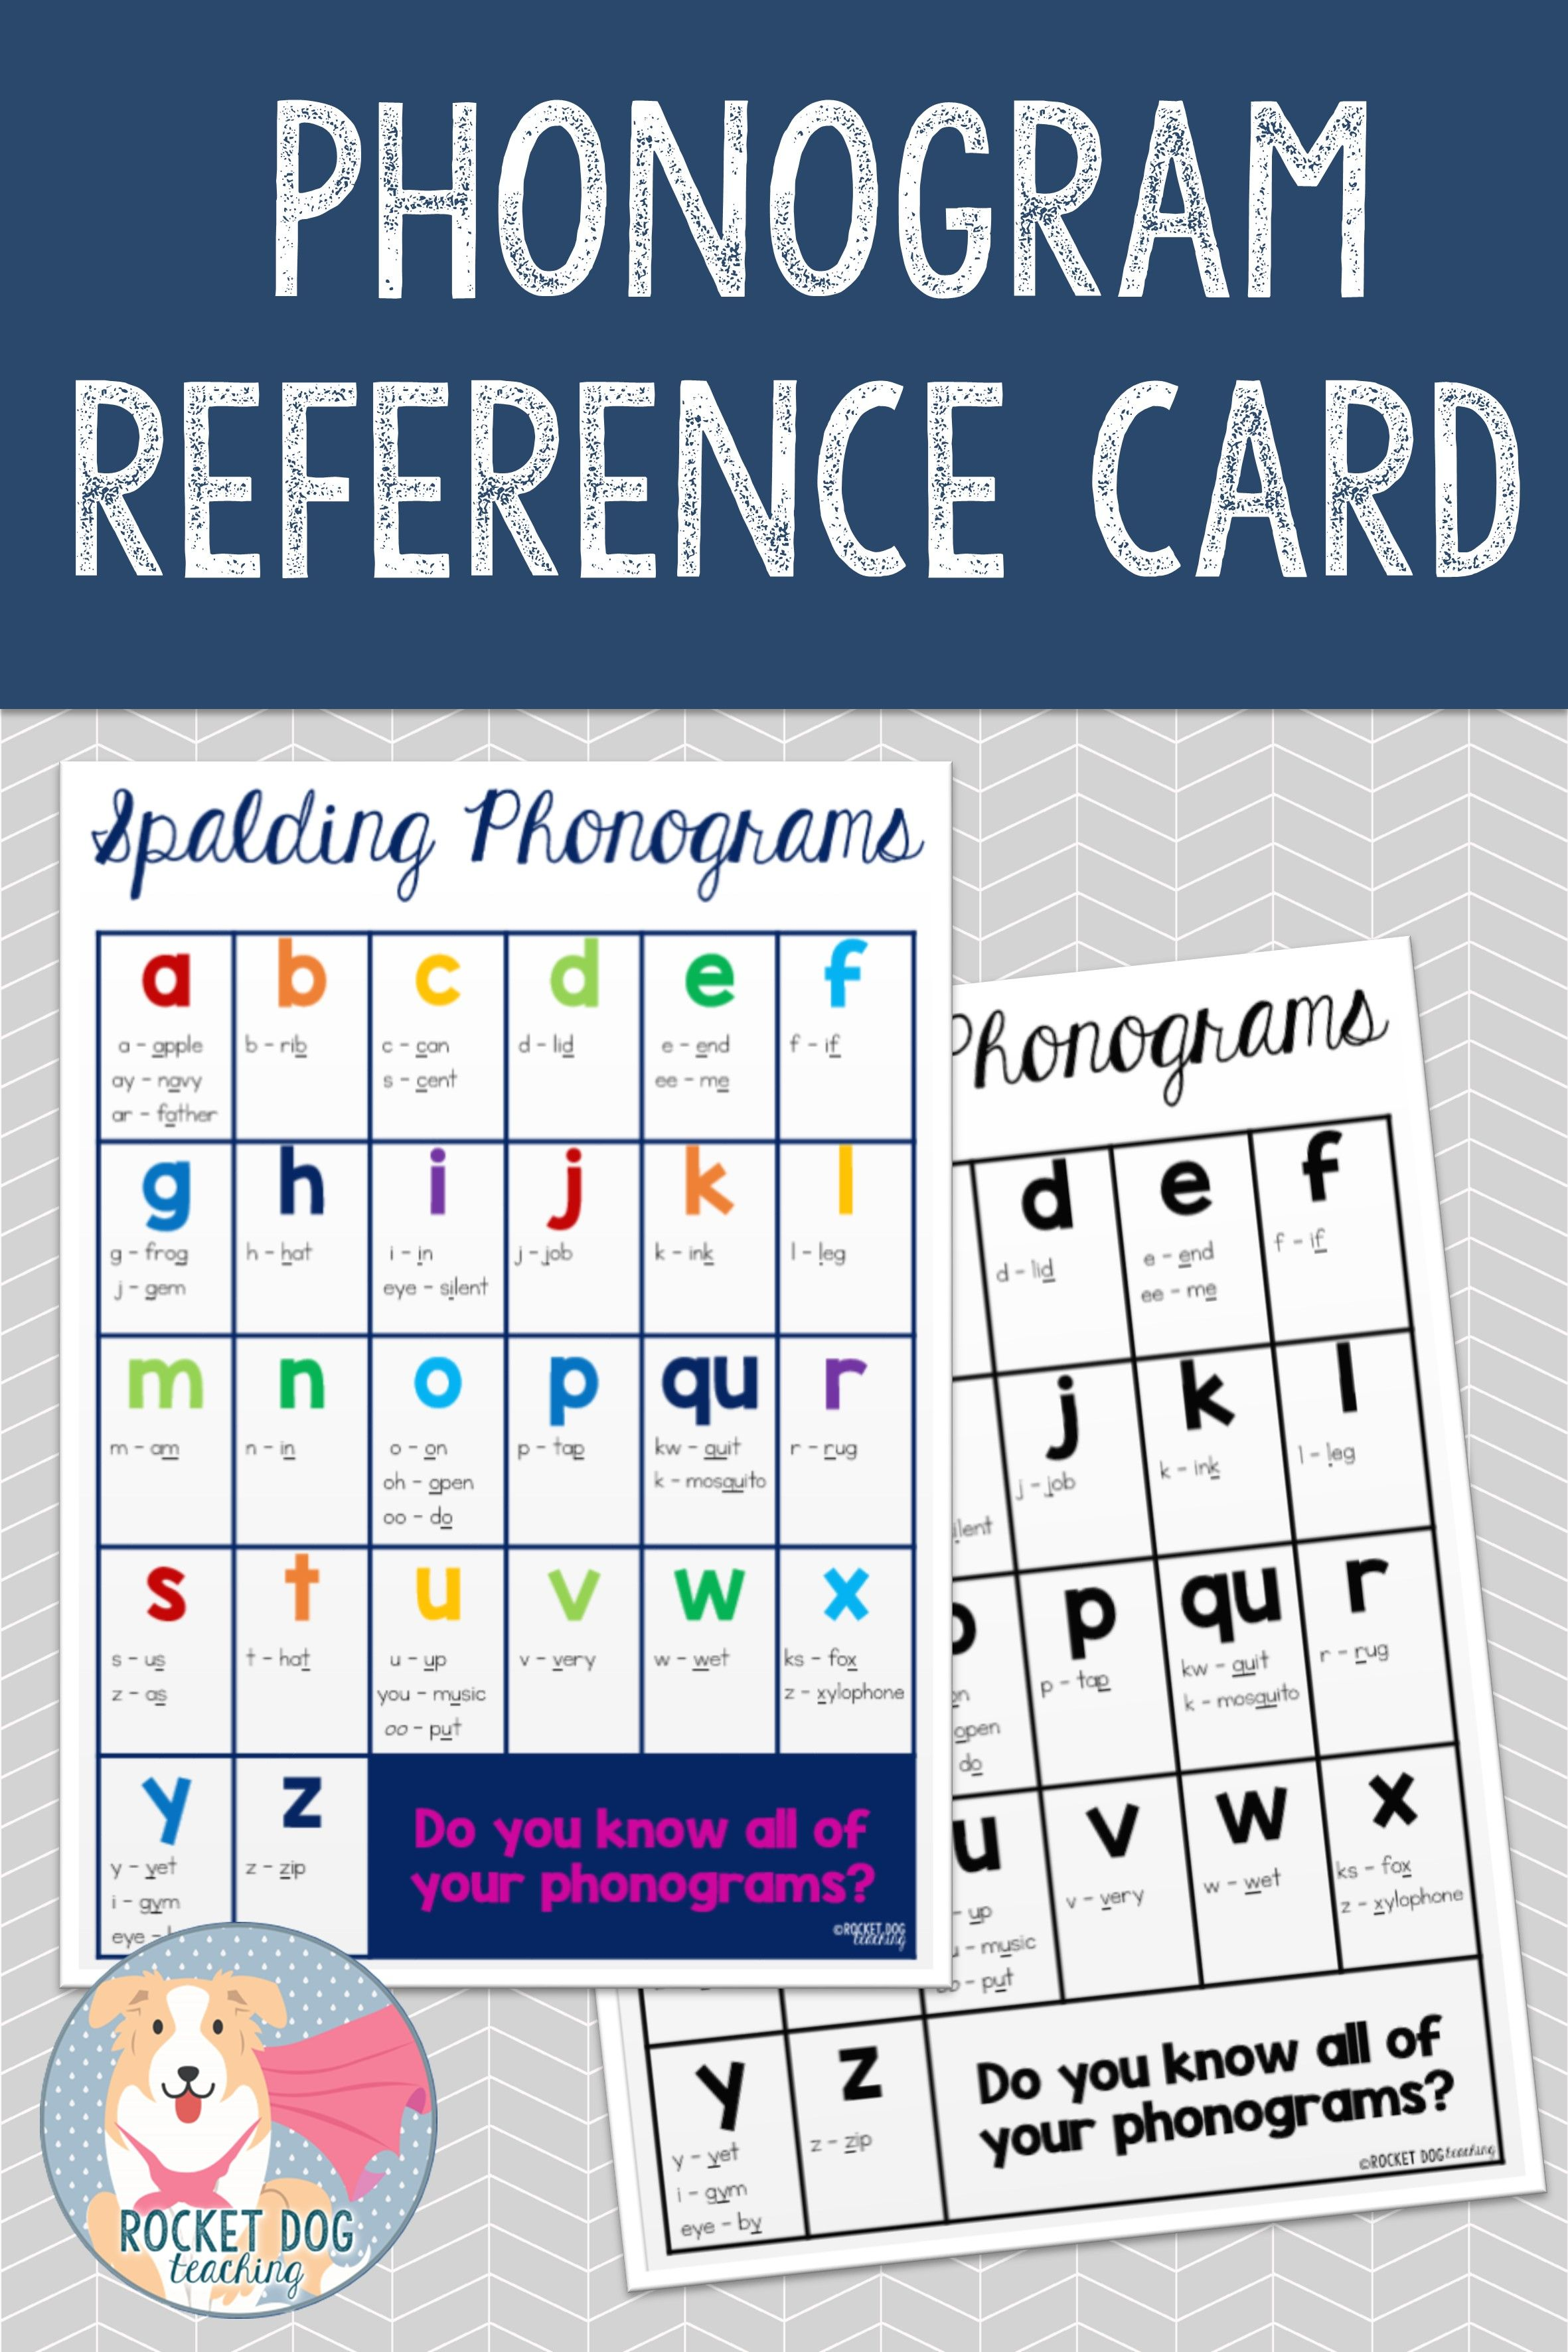 Printable Spalding Phonogram Reference Card In Black And White Or Colour Use In The Classroom Or Send Home Phonograms Reference Cards Spelling Activities [ 3543 x 2362 Pixel ]